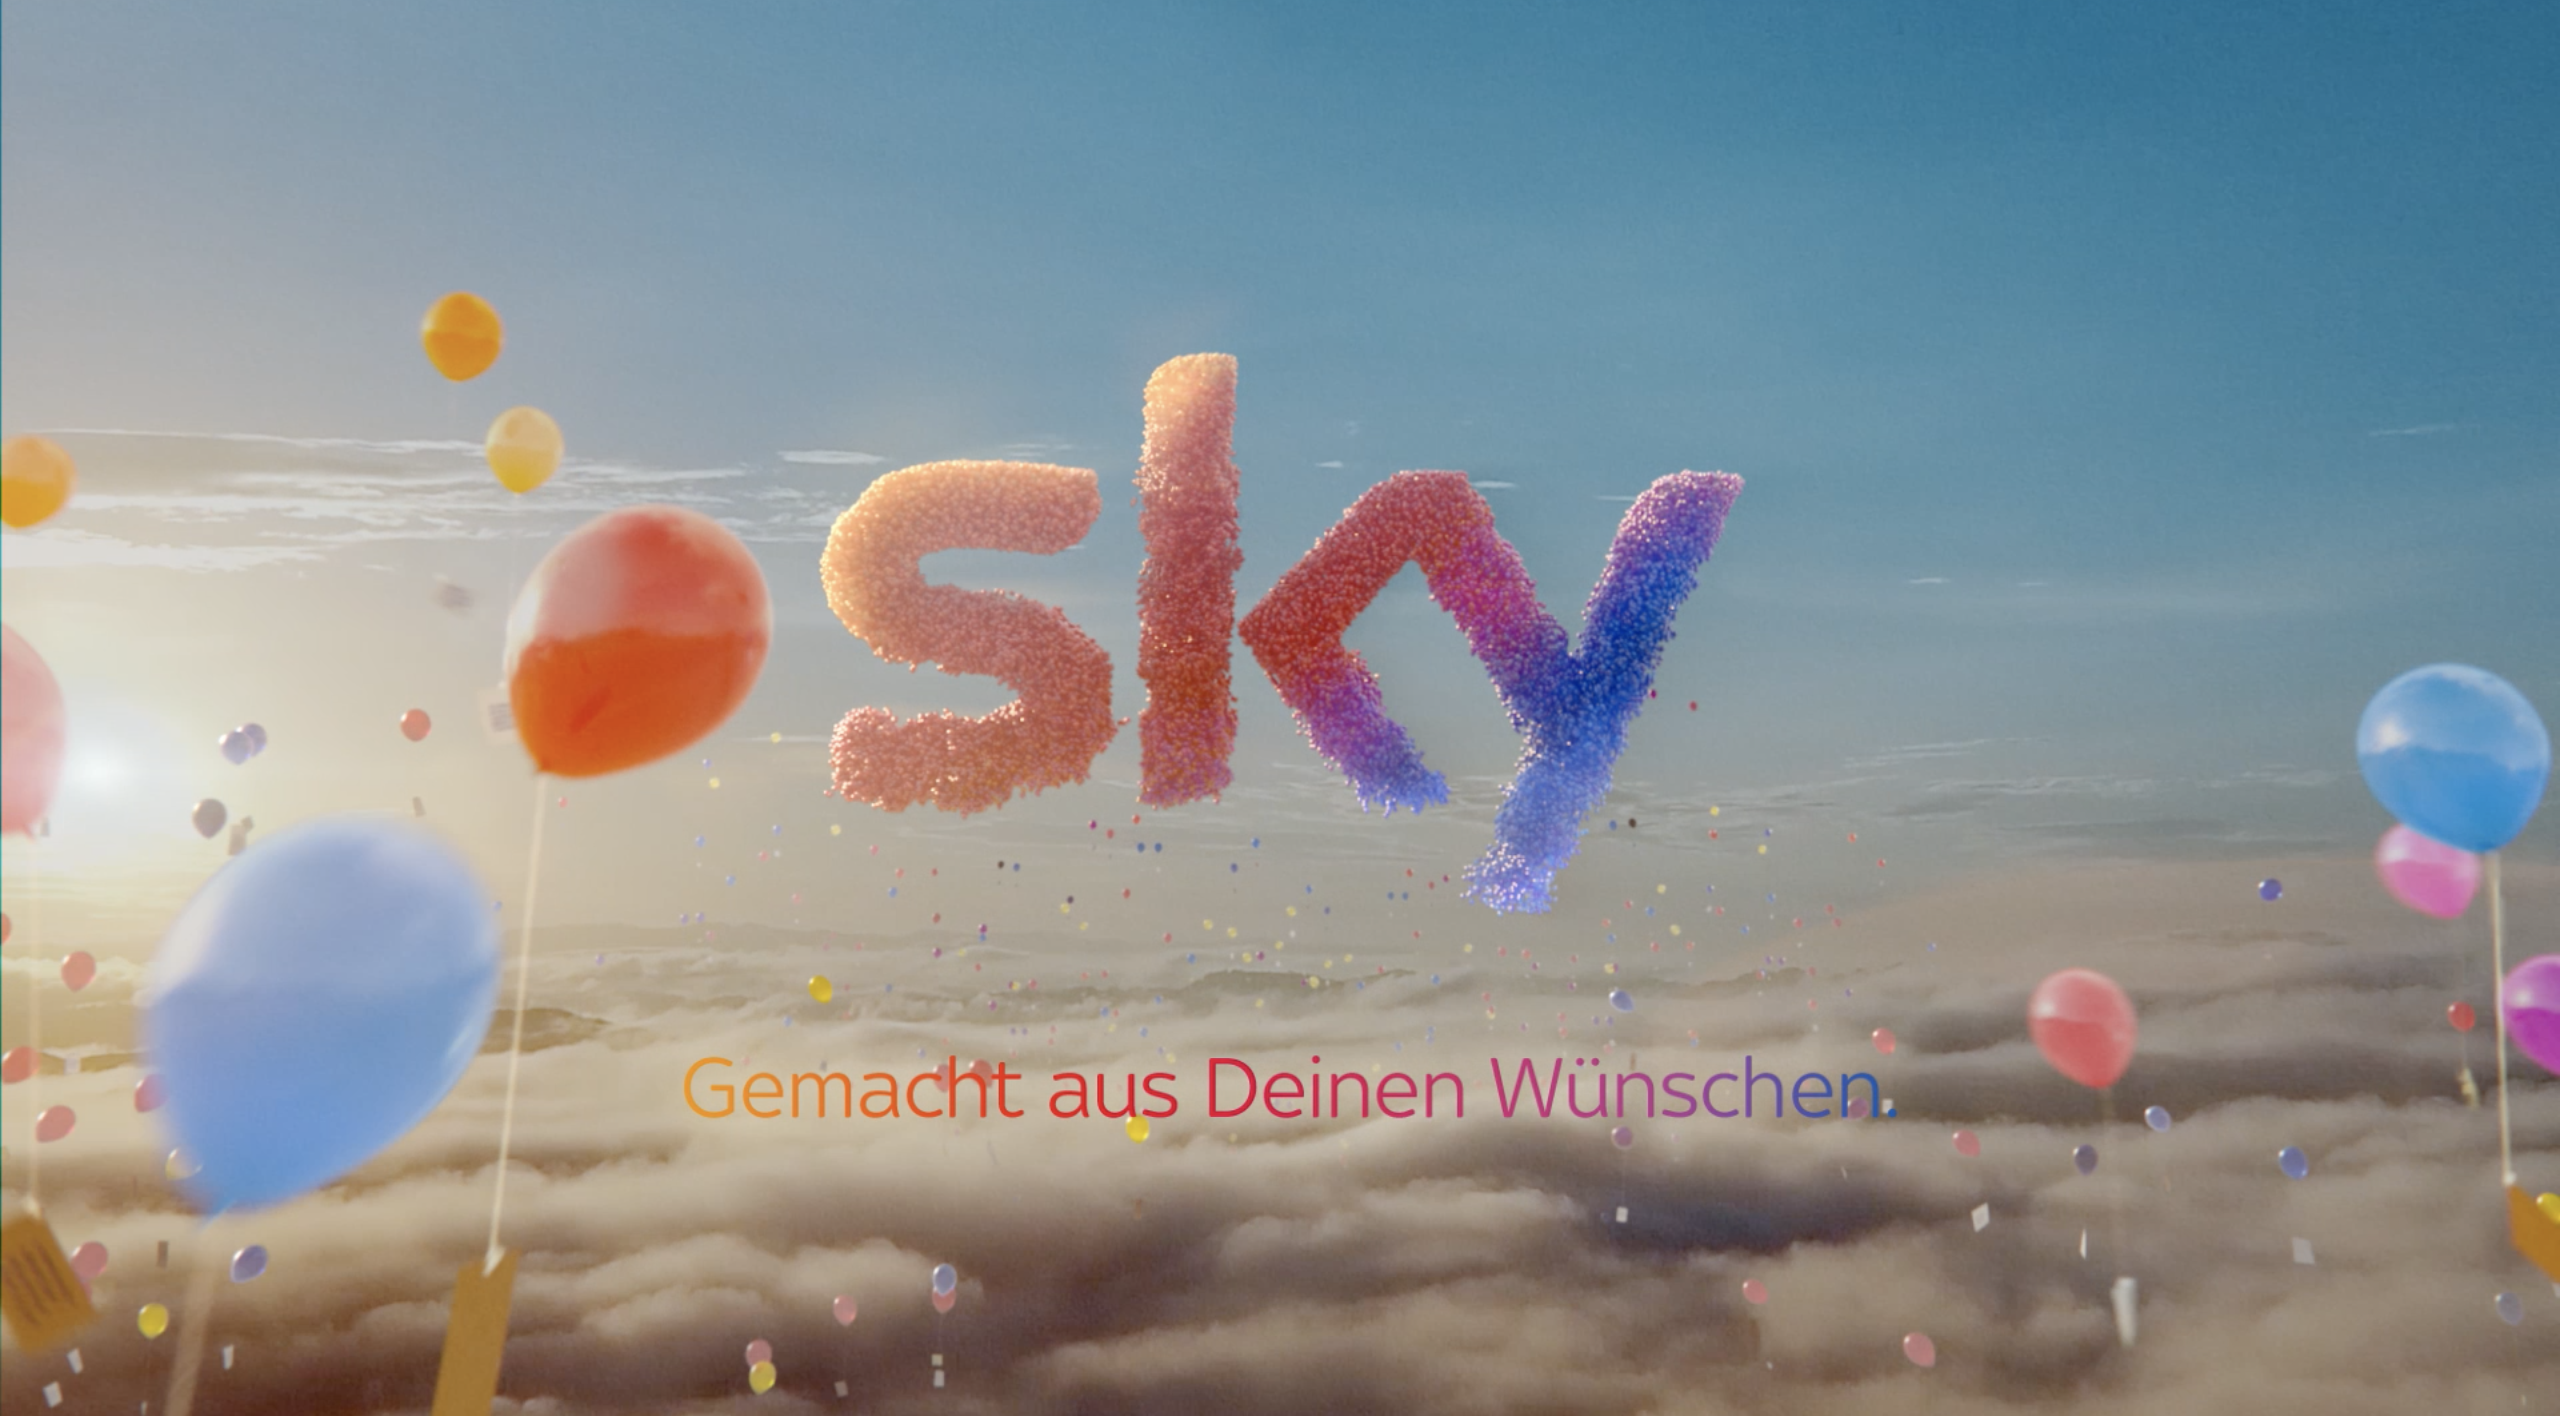 Music Search & Negotiations for SKY Relaunch